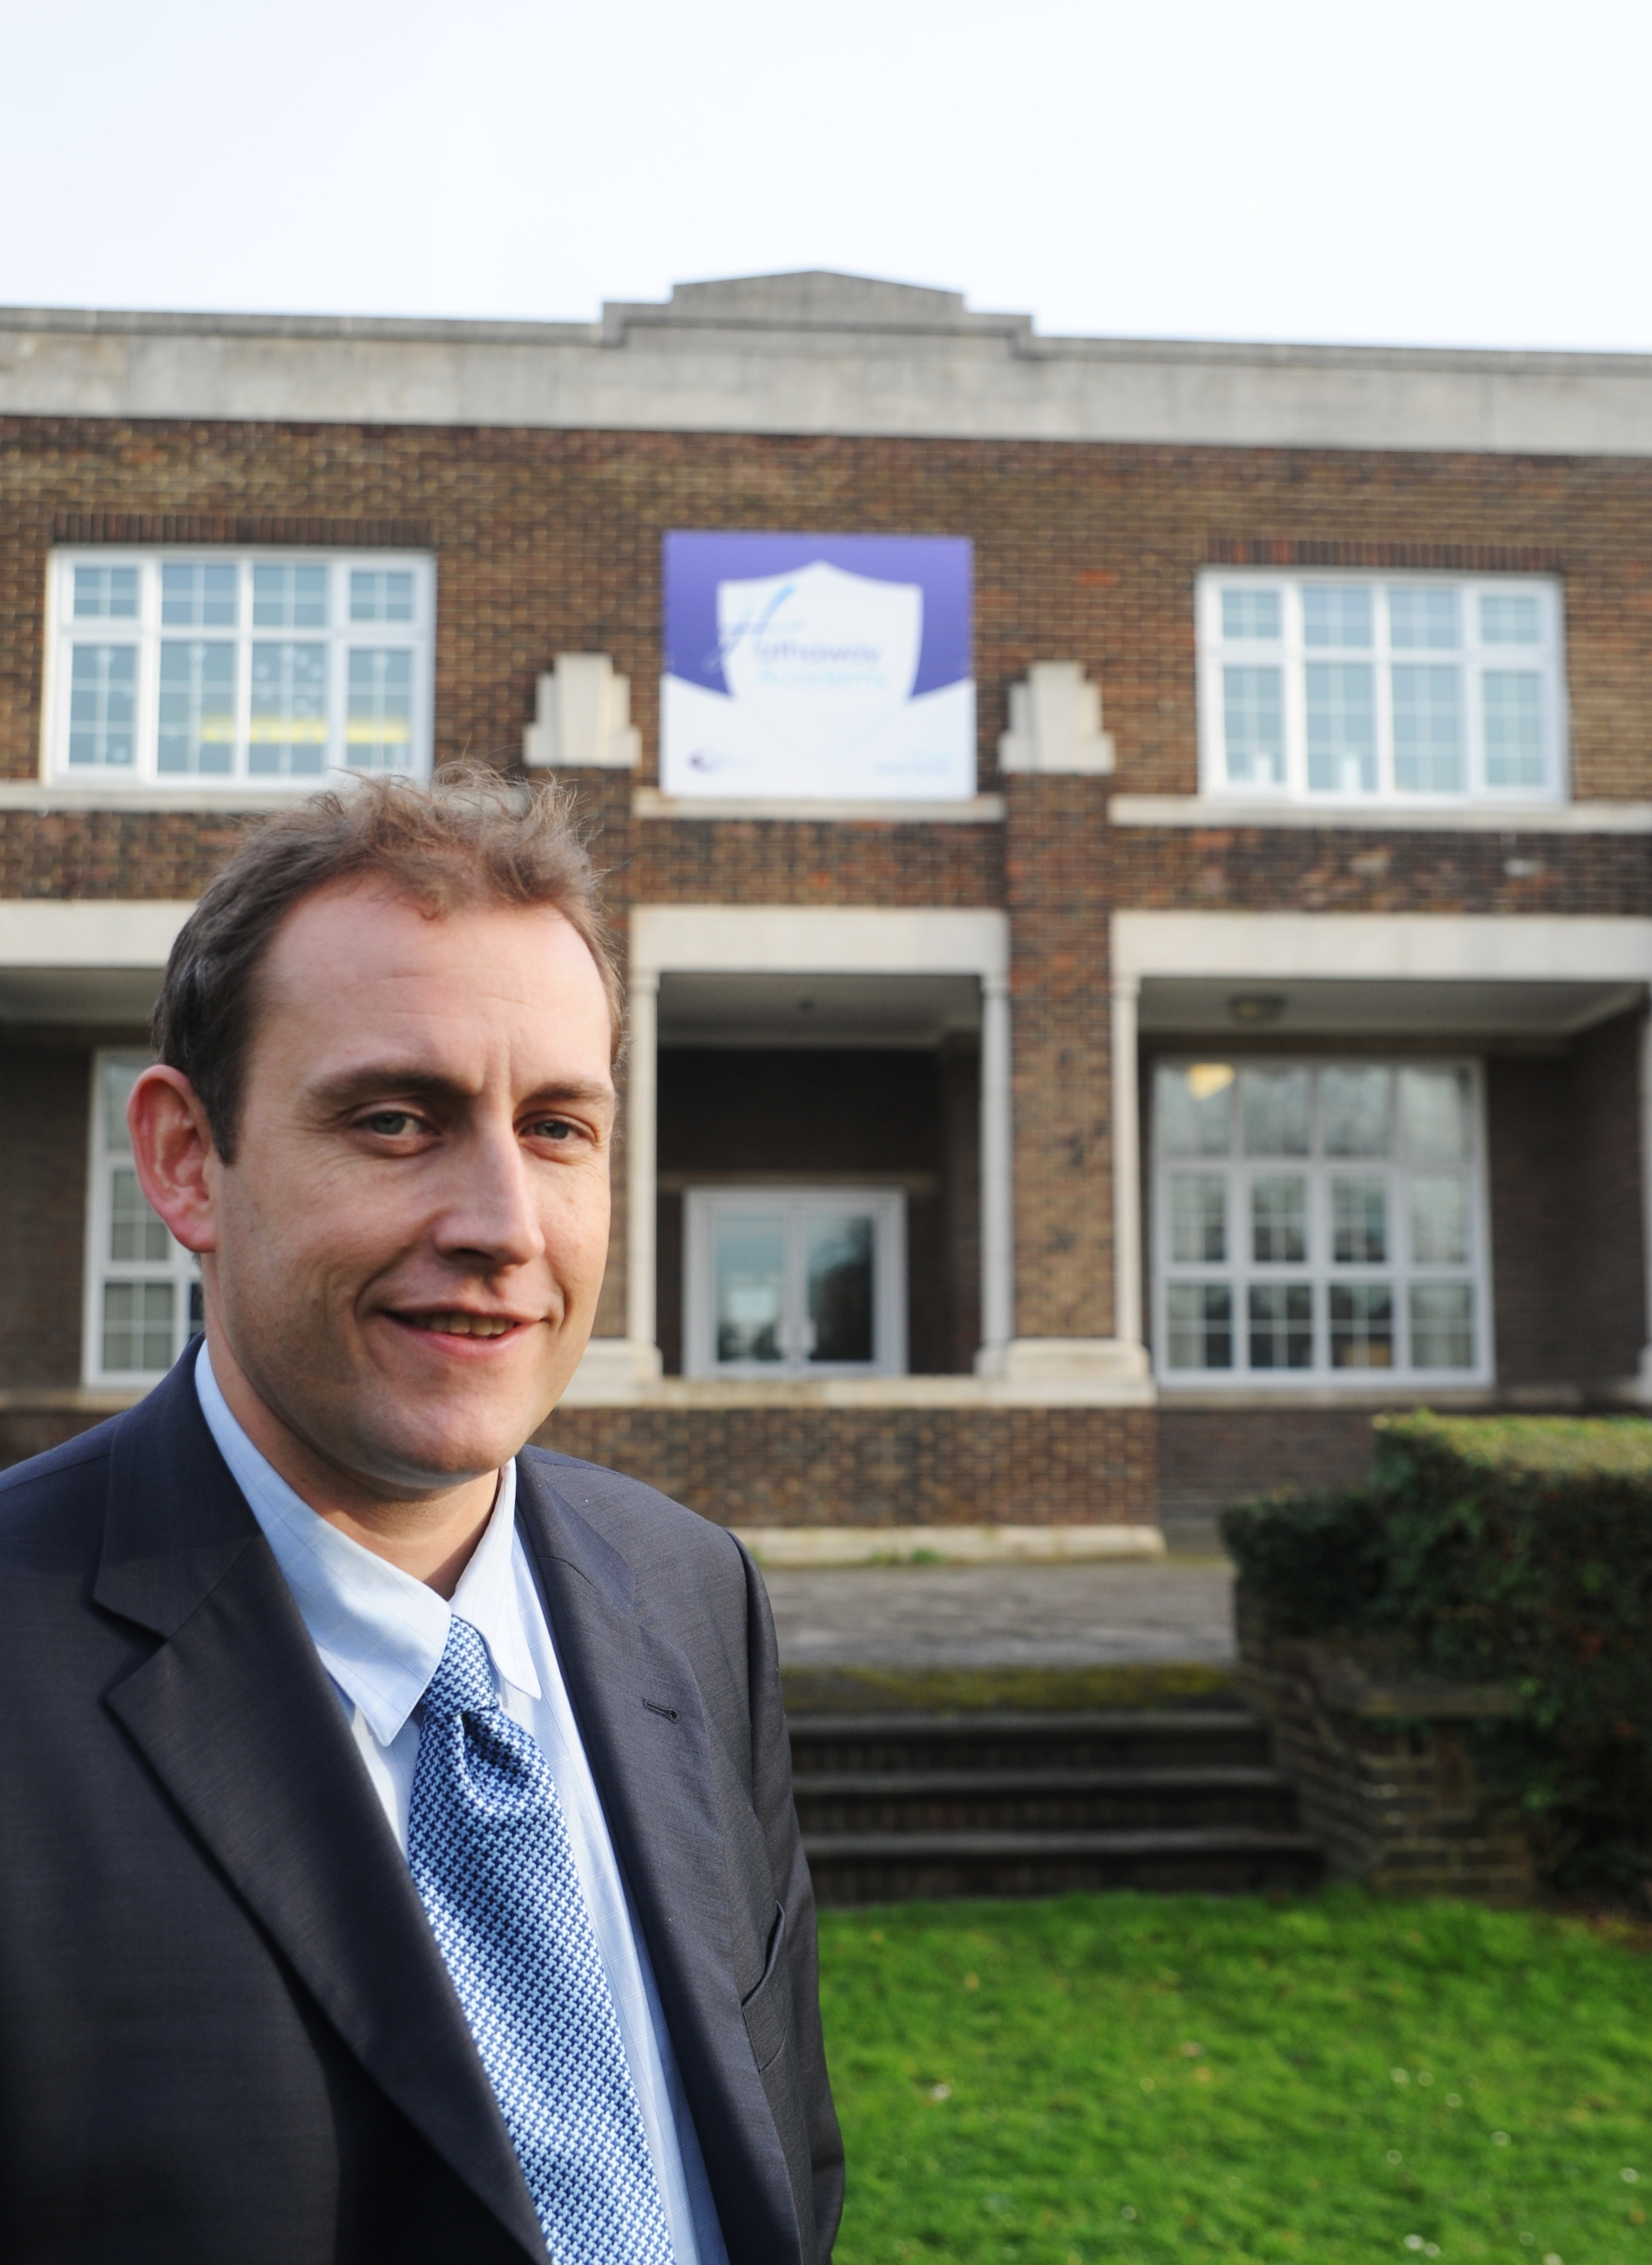 James Howarth outside the Hathaway Academy